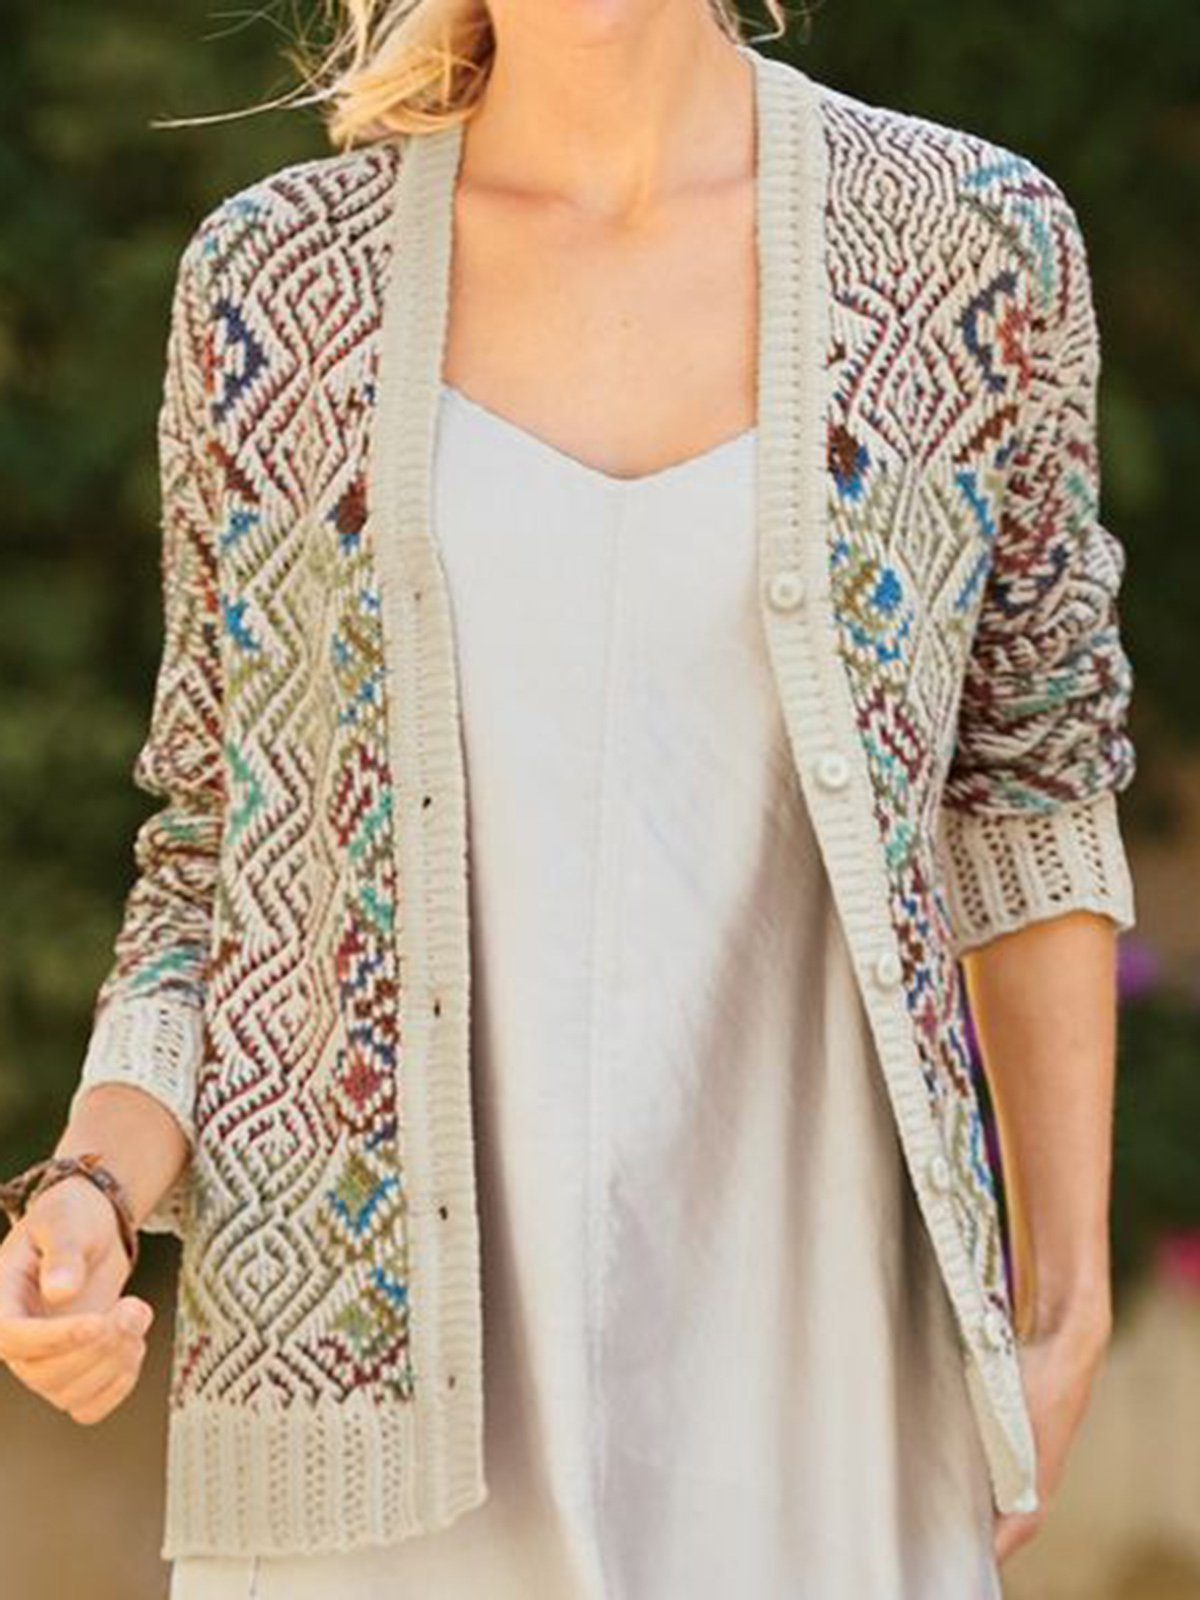 Khaki Knitted Long Sleeve Knitted Outerwear